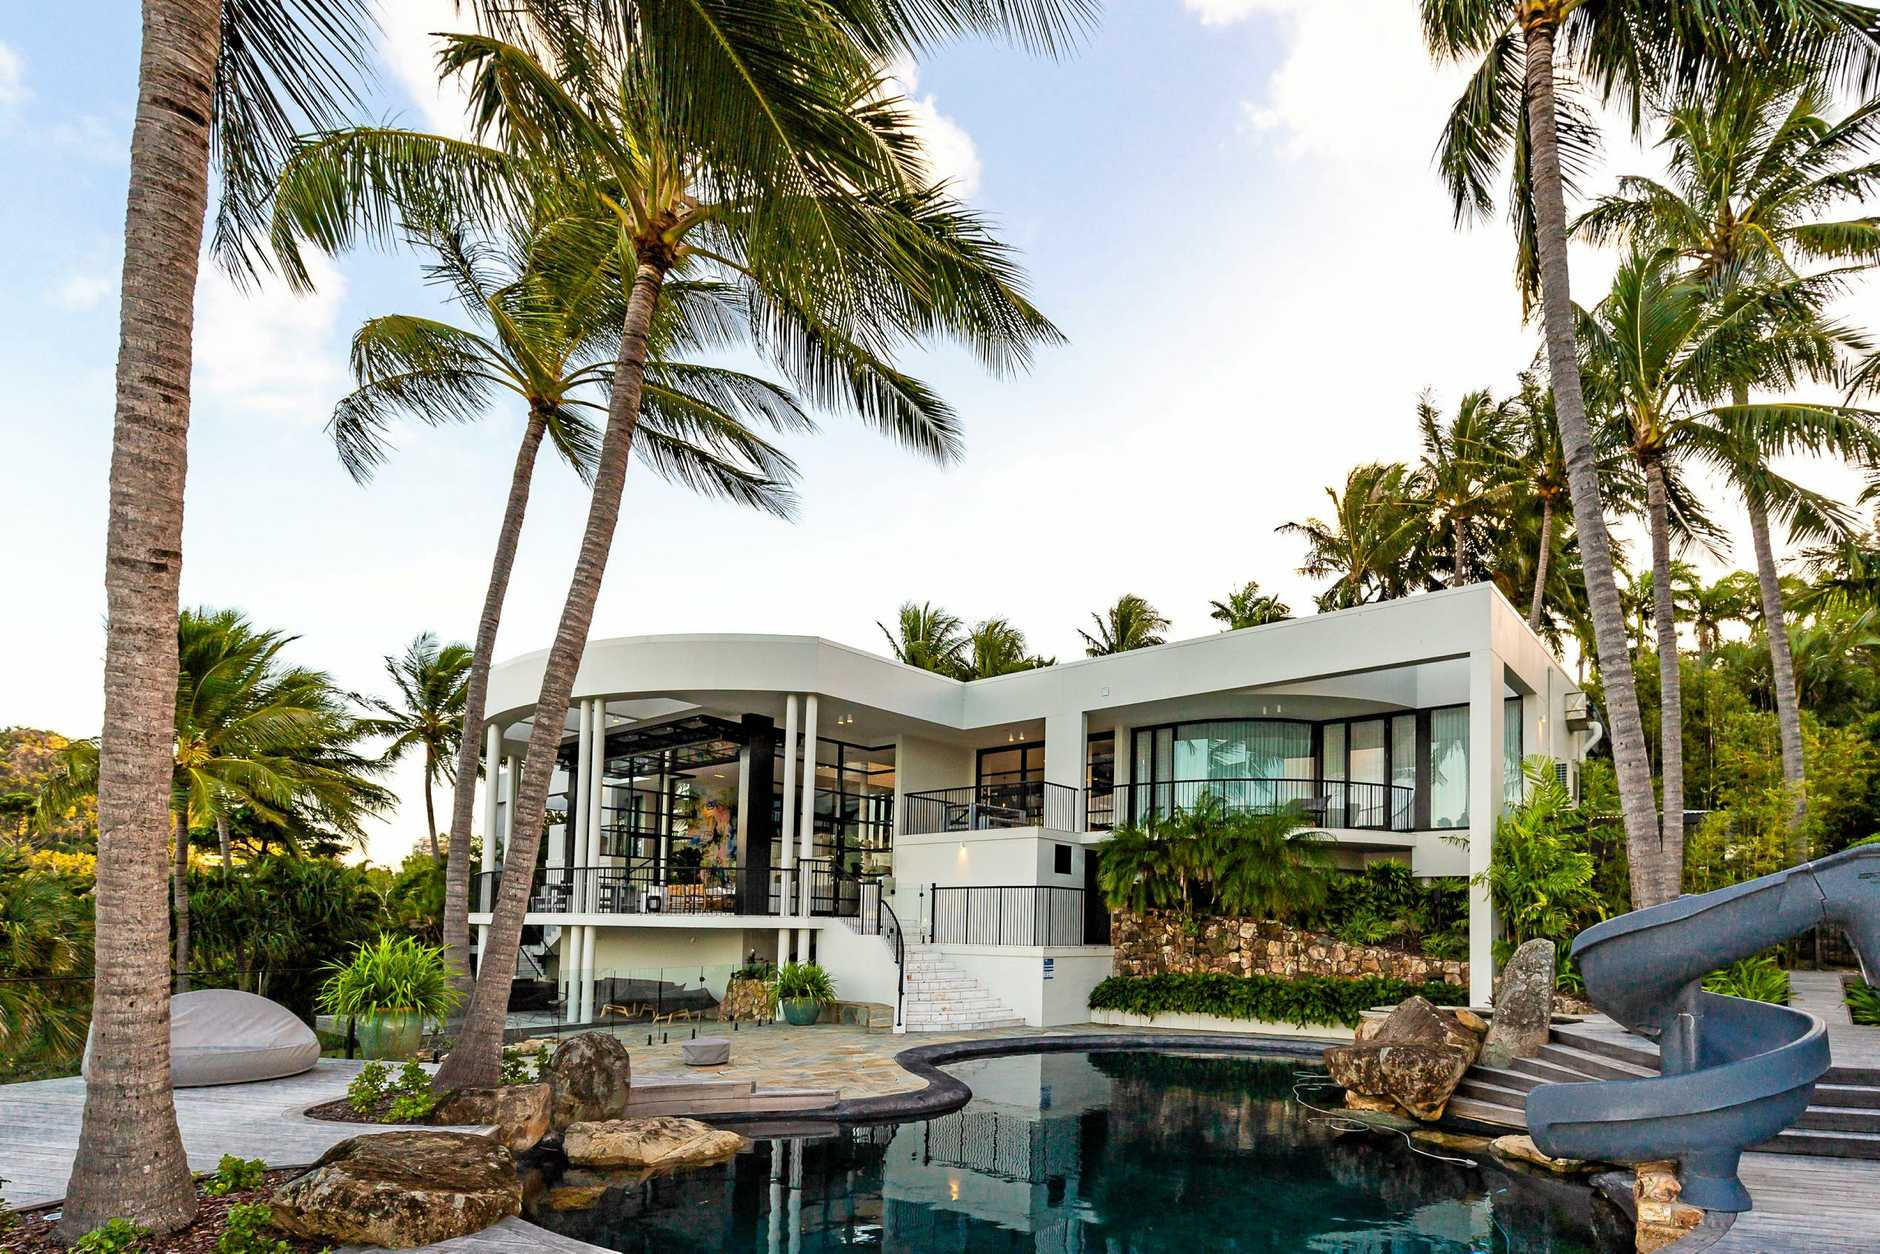 Coastal Edge Constructions won the catagory, Home Renovation/Remodelling Project over $1 million, at the Master Builders Housing & Construction Awards 2019 with the entry The Whitehouse on Hamilton Island.